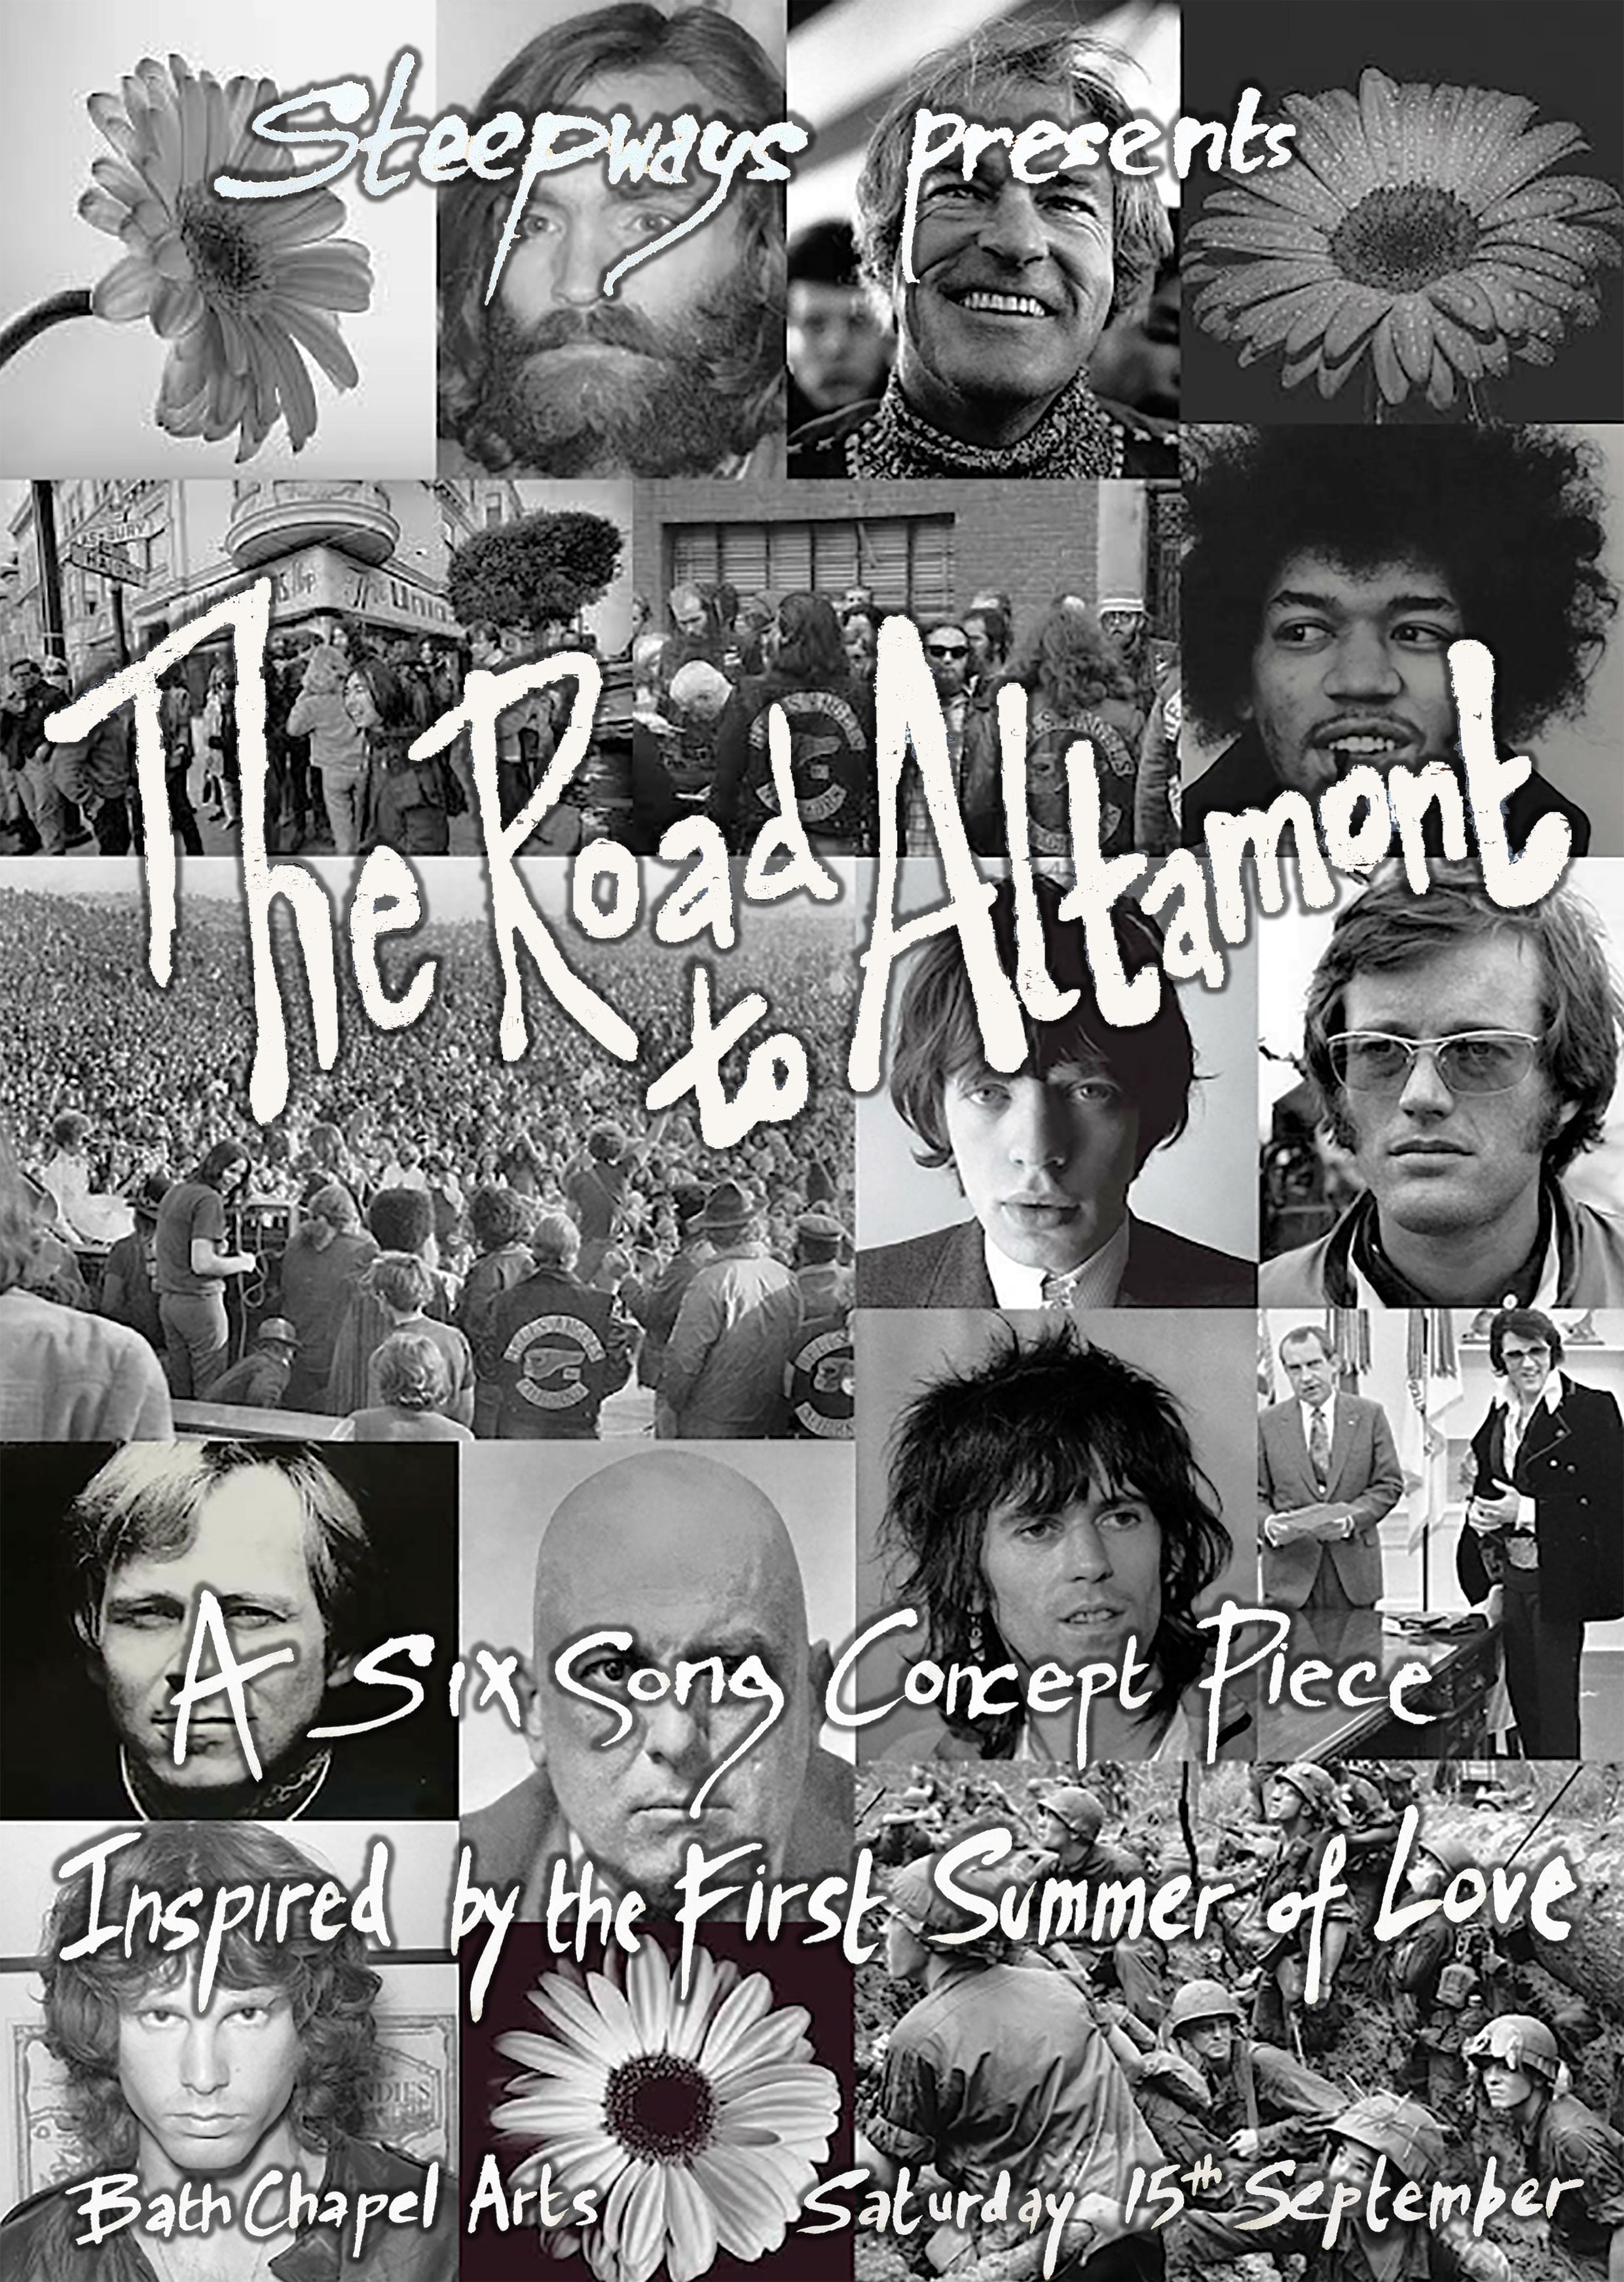 Steepways present 'The Road to Altamont' plus support, Pete Greenwood